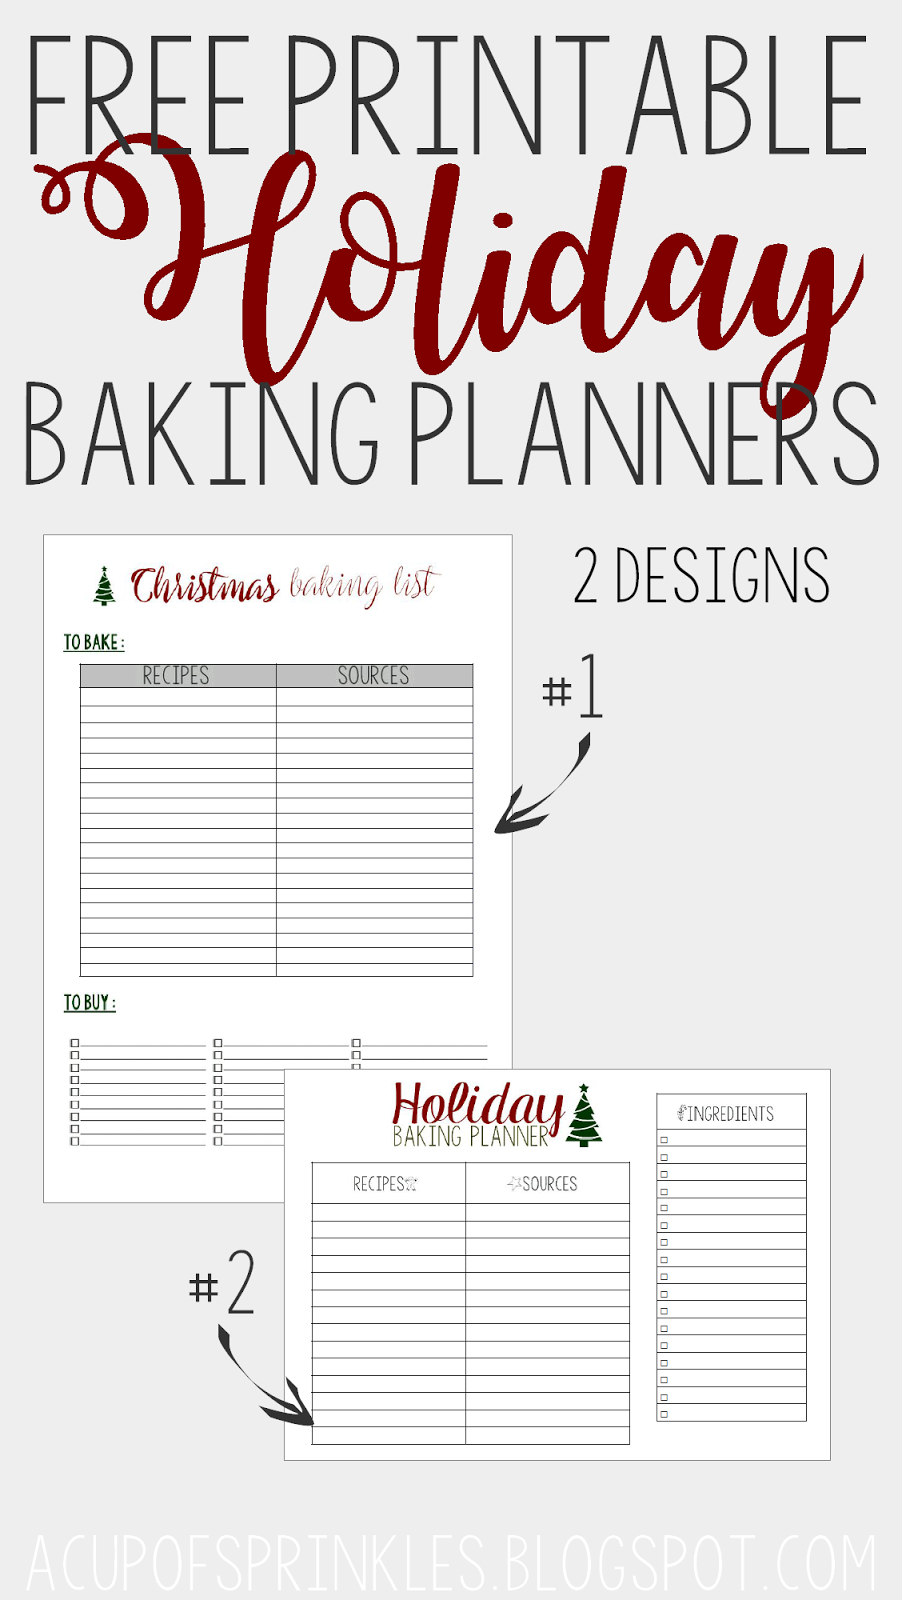 Free Printable Holiday Christmas Baking Planner